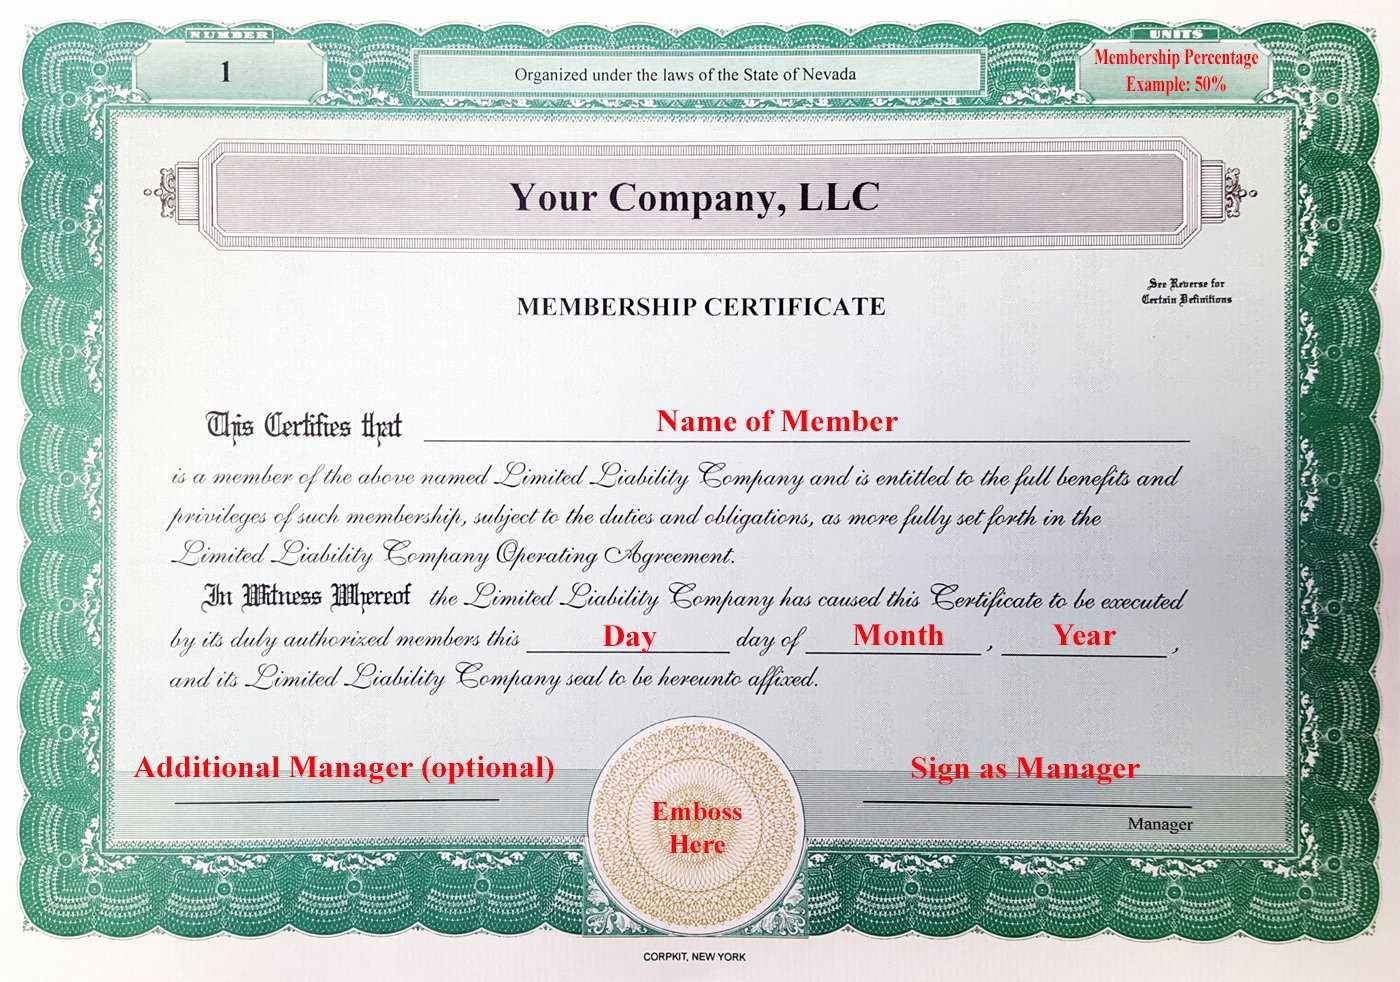 004 Llcship Certificate Template Best Of Laughlin Associates Pertaining To Llc Membership Certificate Template Word